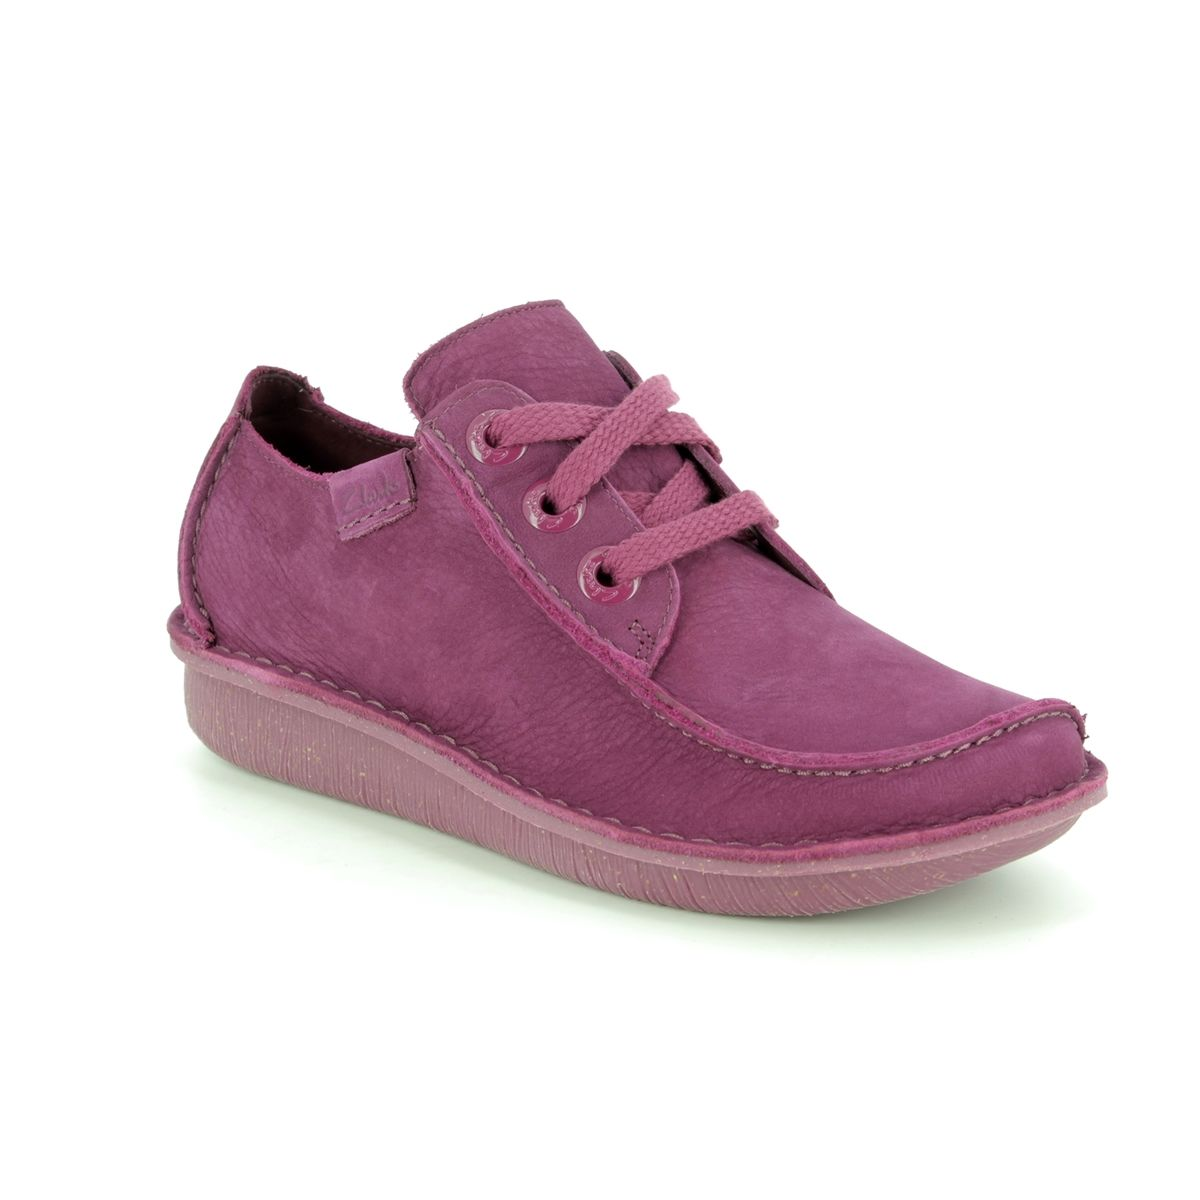 48fbe36c2f3b4d Clarks Lacing Shoes - Raspberry pink - 400984D FUNNY DREAM